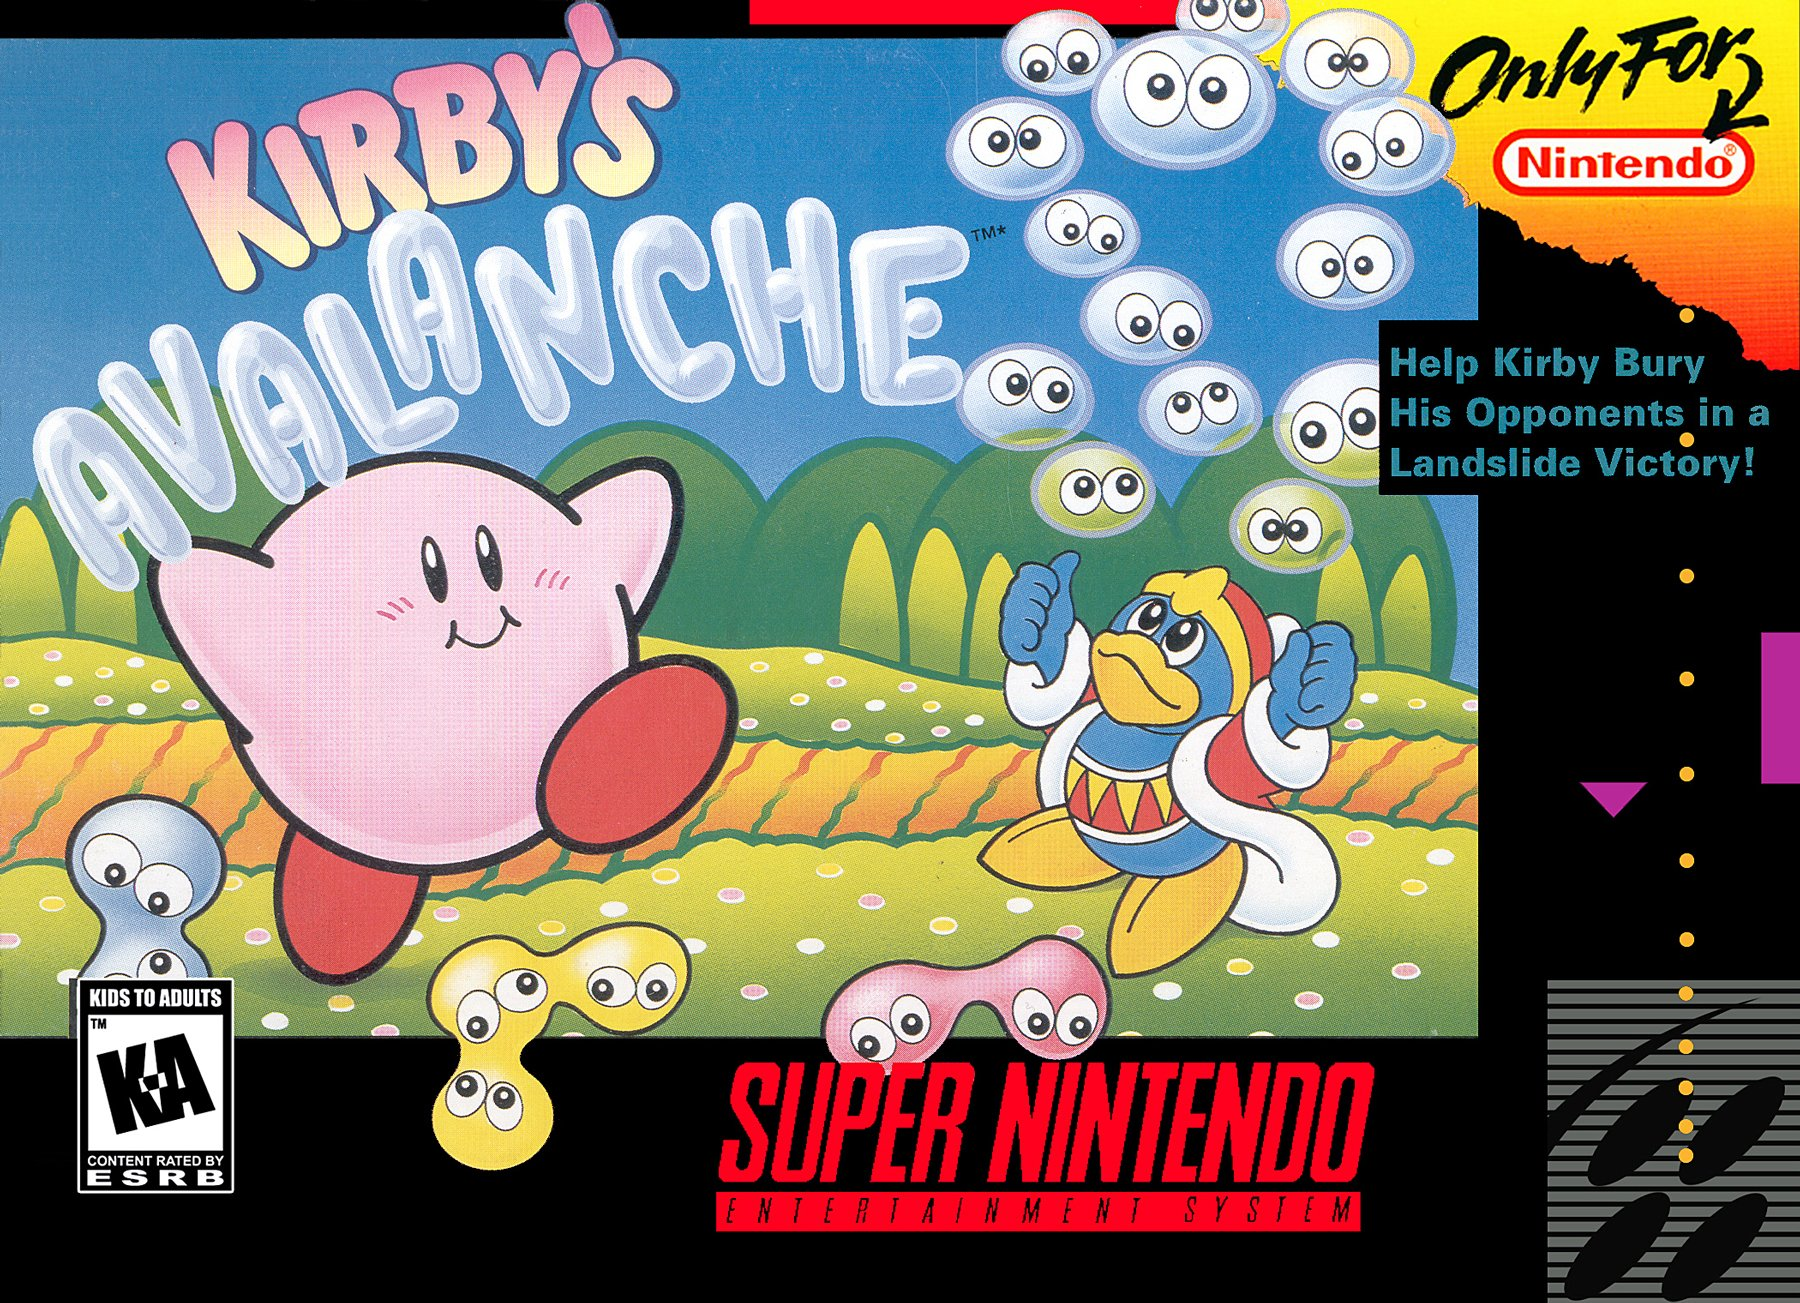 My mom is awesome except for that one time she tried to murder us all with Kirby's Avalanche screenshot